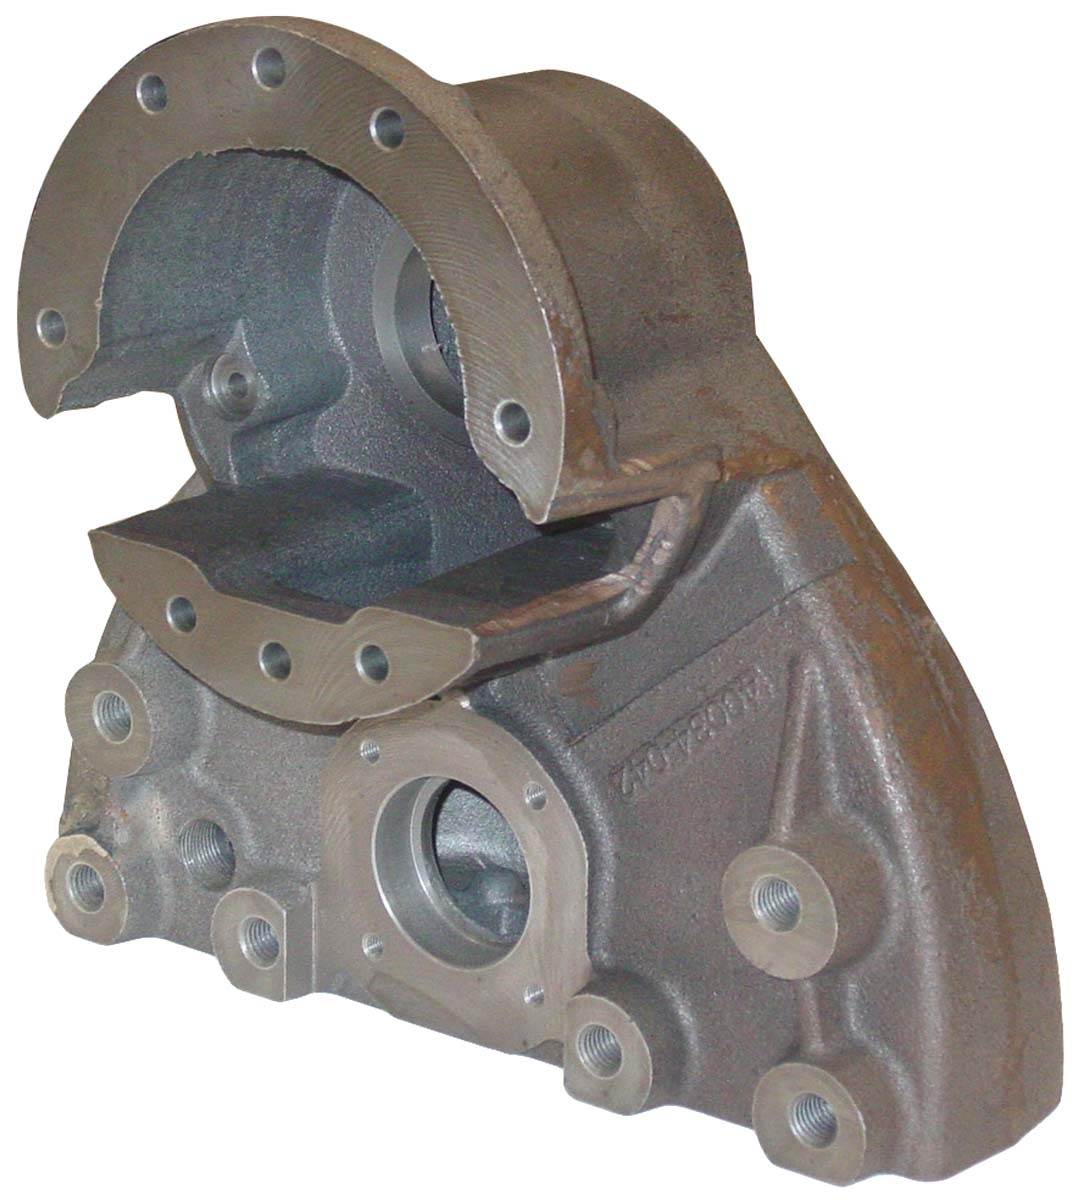 Tractor Rear Axle Parts : Rear axle housing farmall parts international